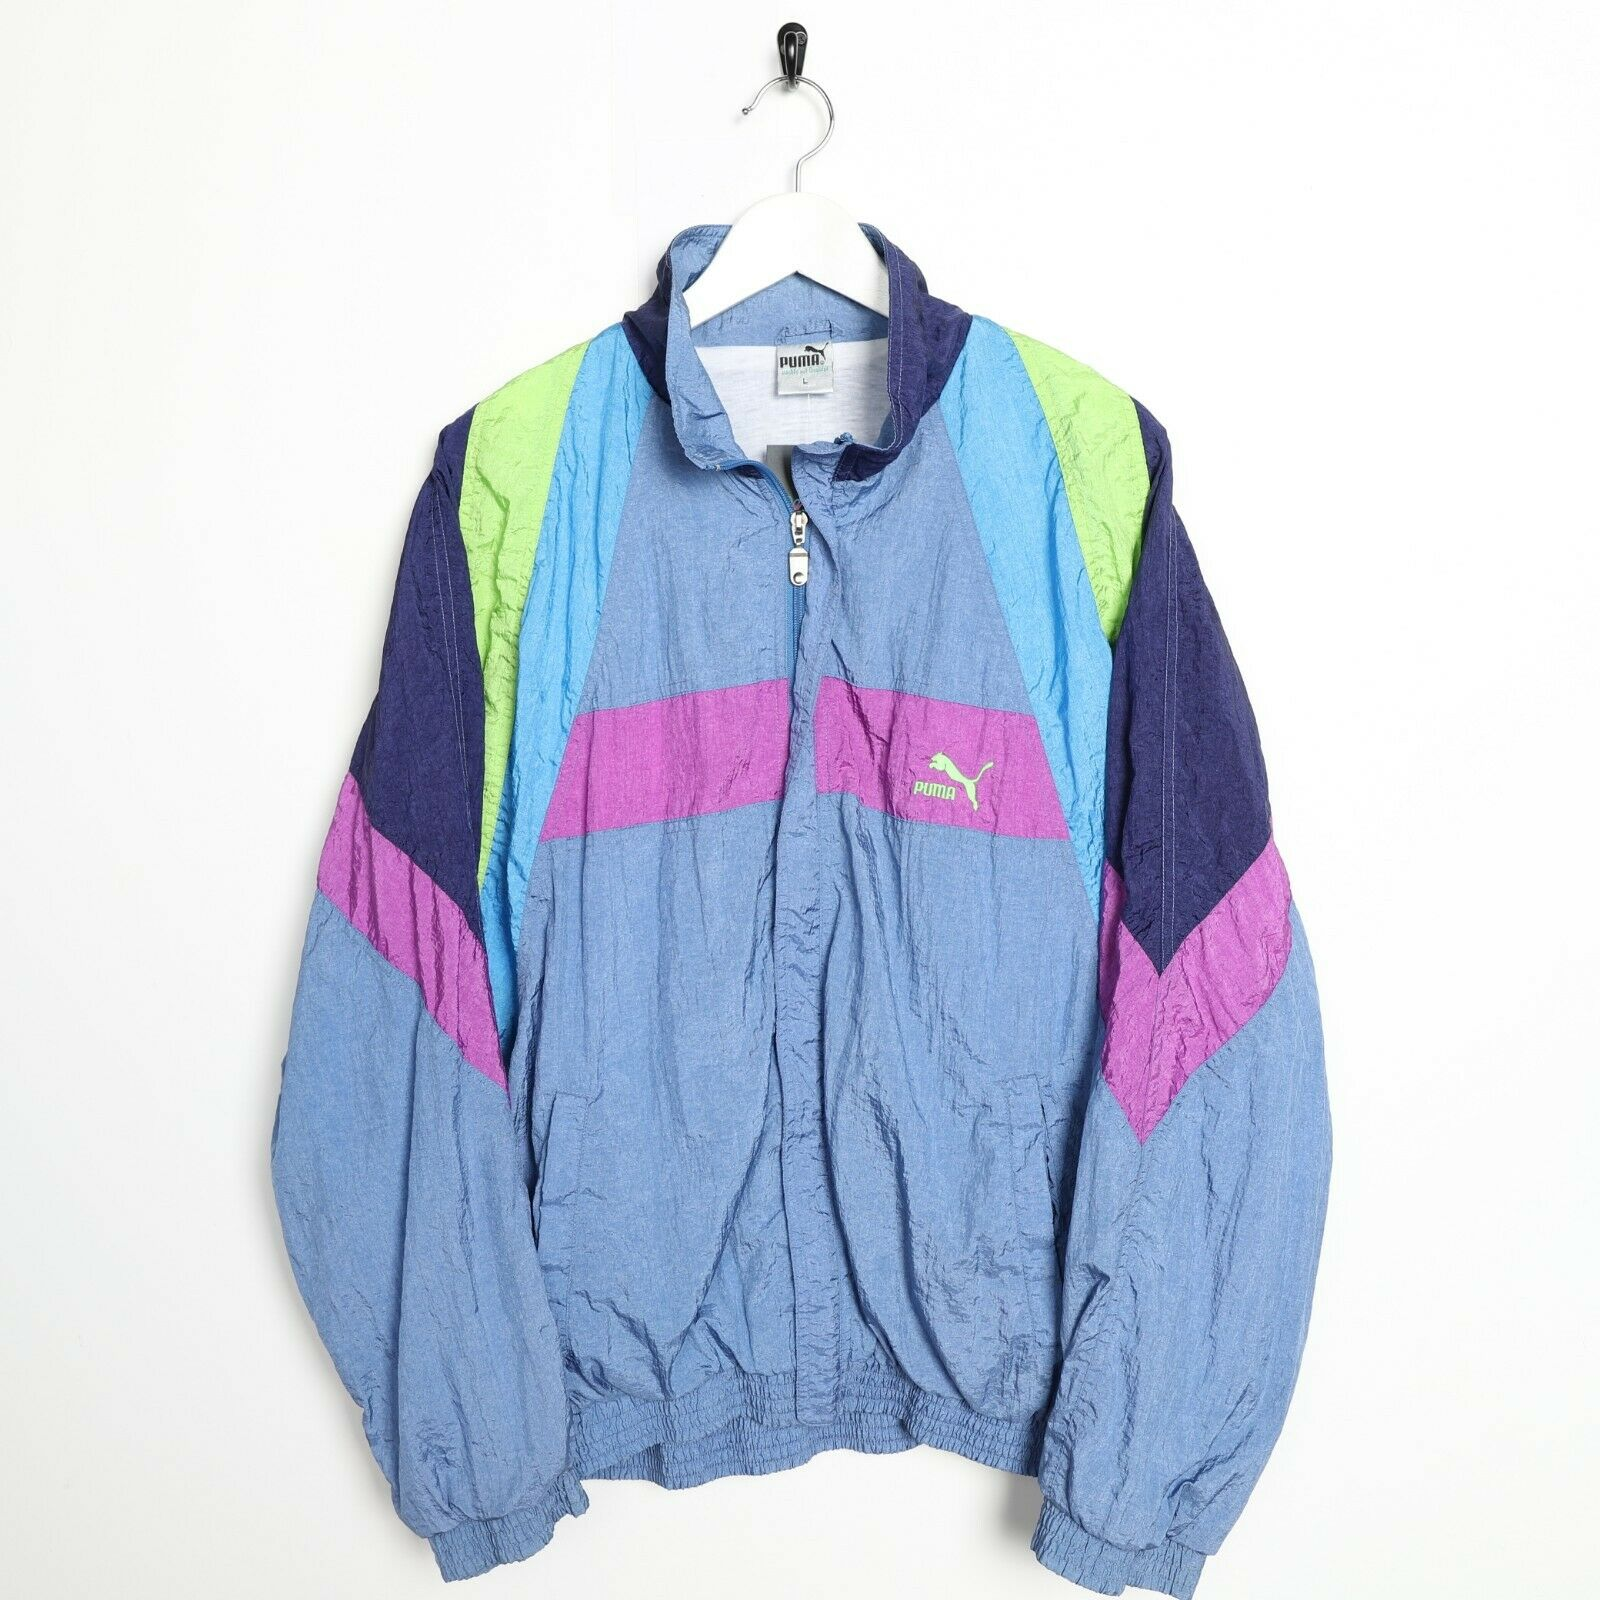 Vintage 90s PUMA Small Logo Soft Shell Windbreaker Jacket Blue | Medium M